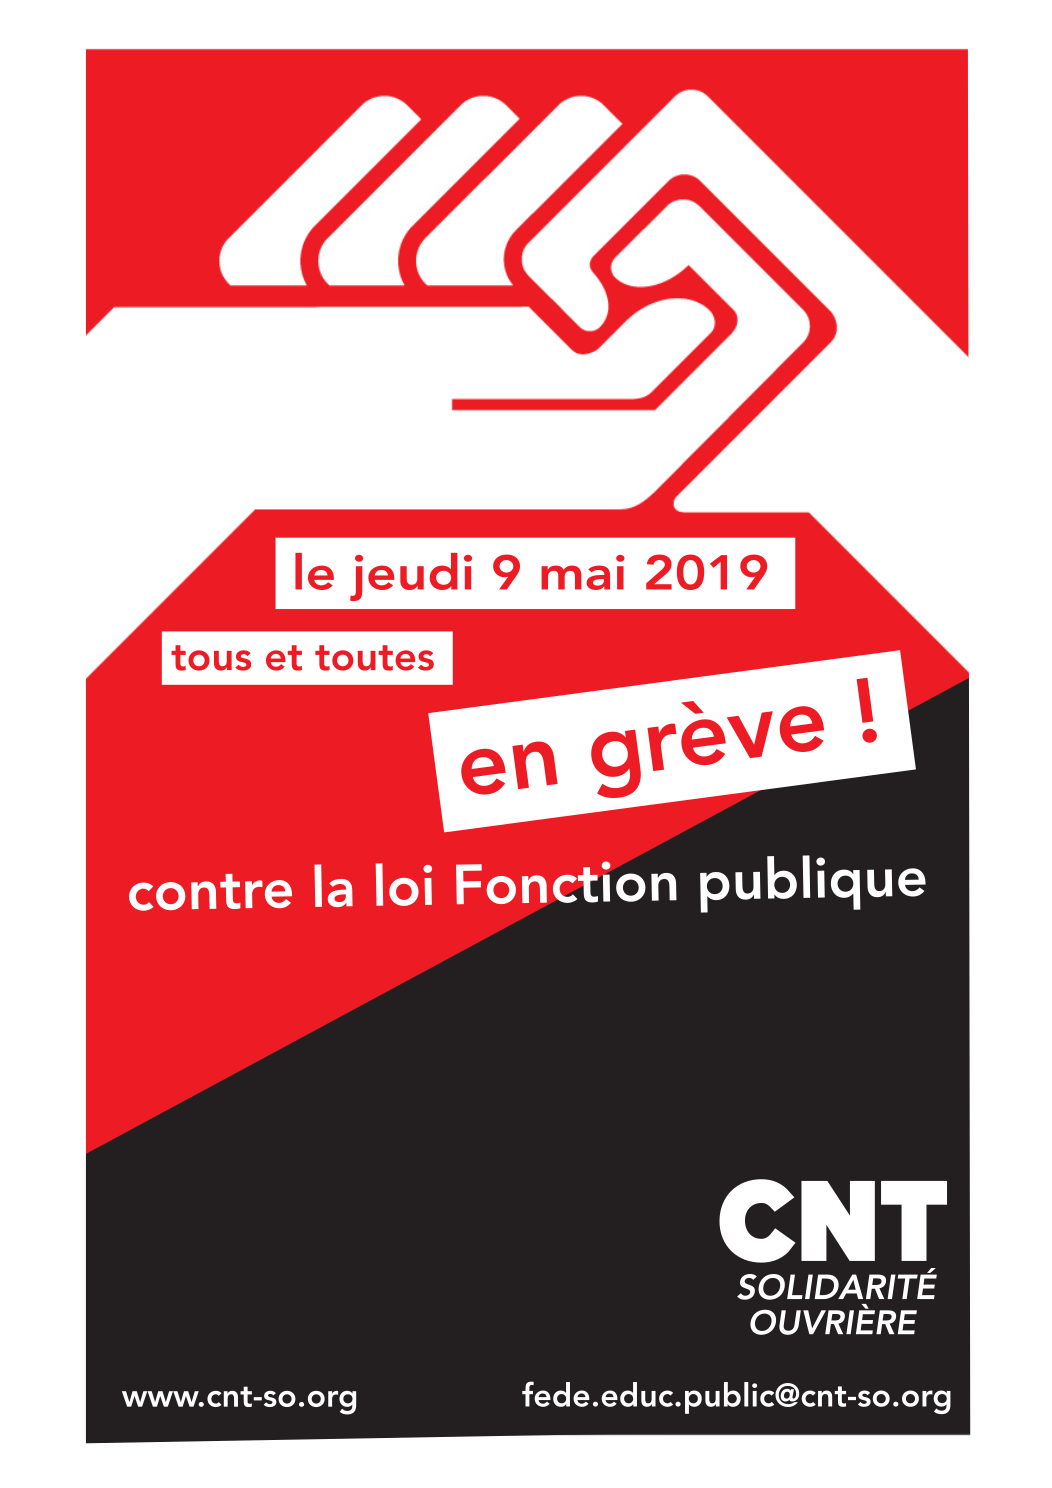 greve_9_mai_2019.png